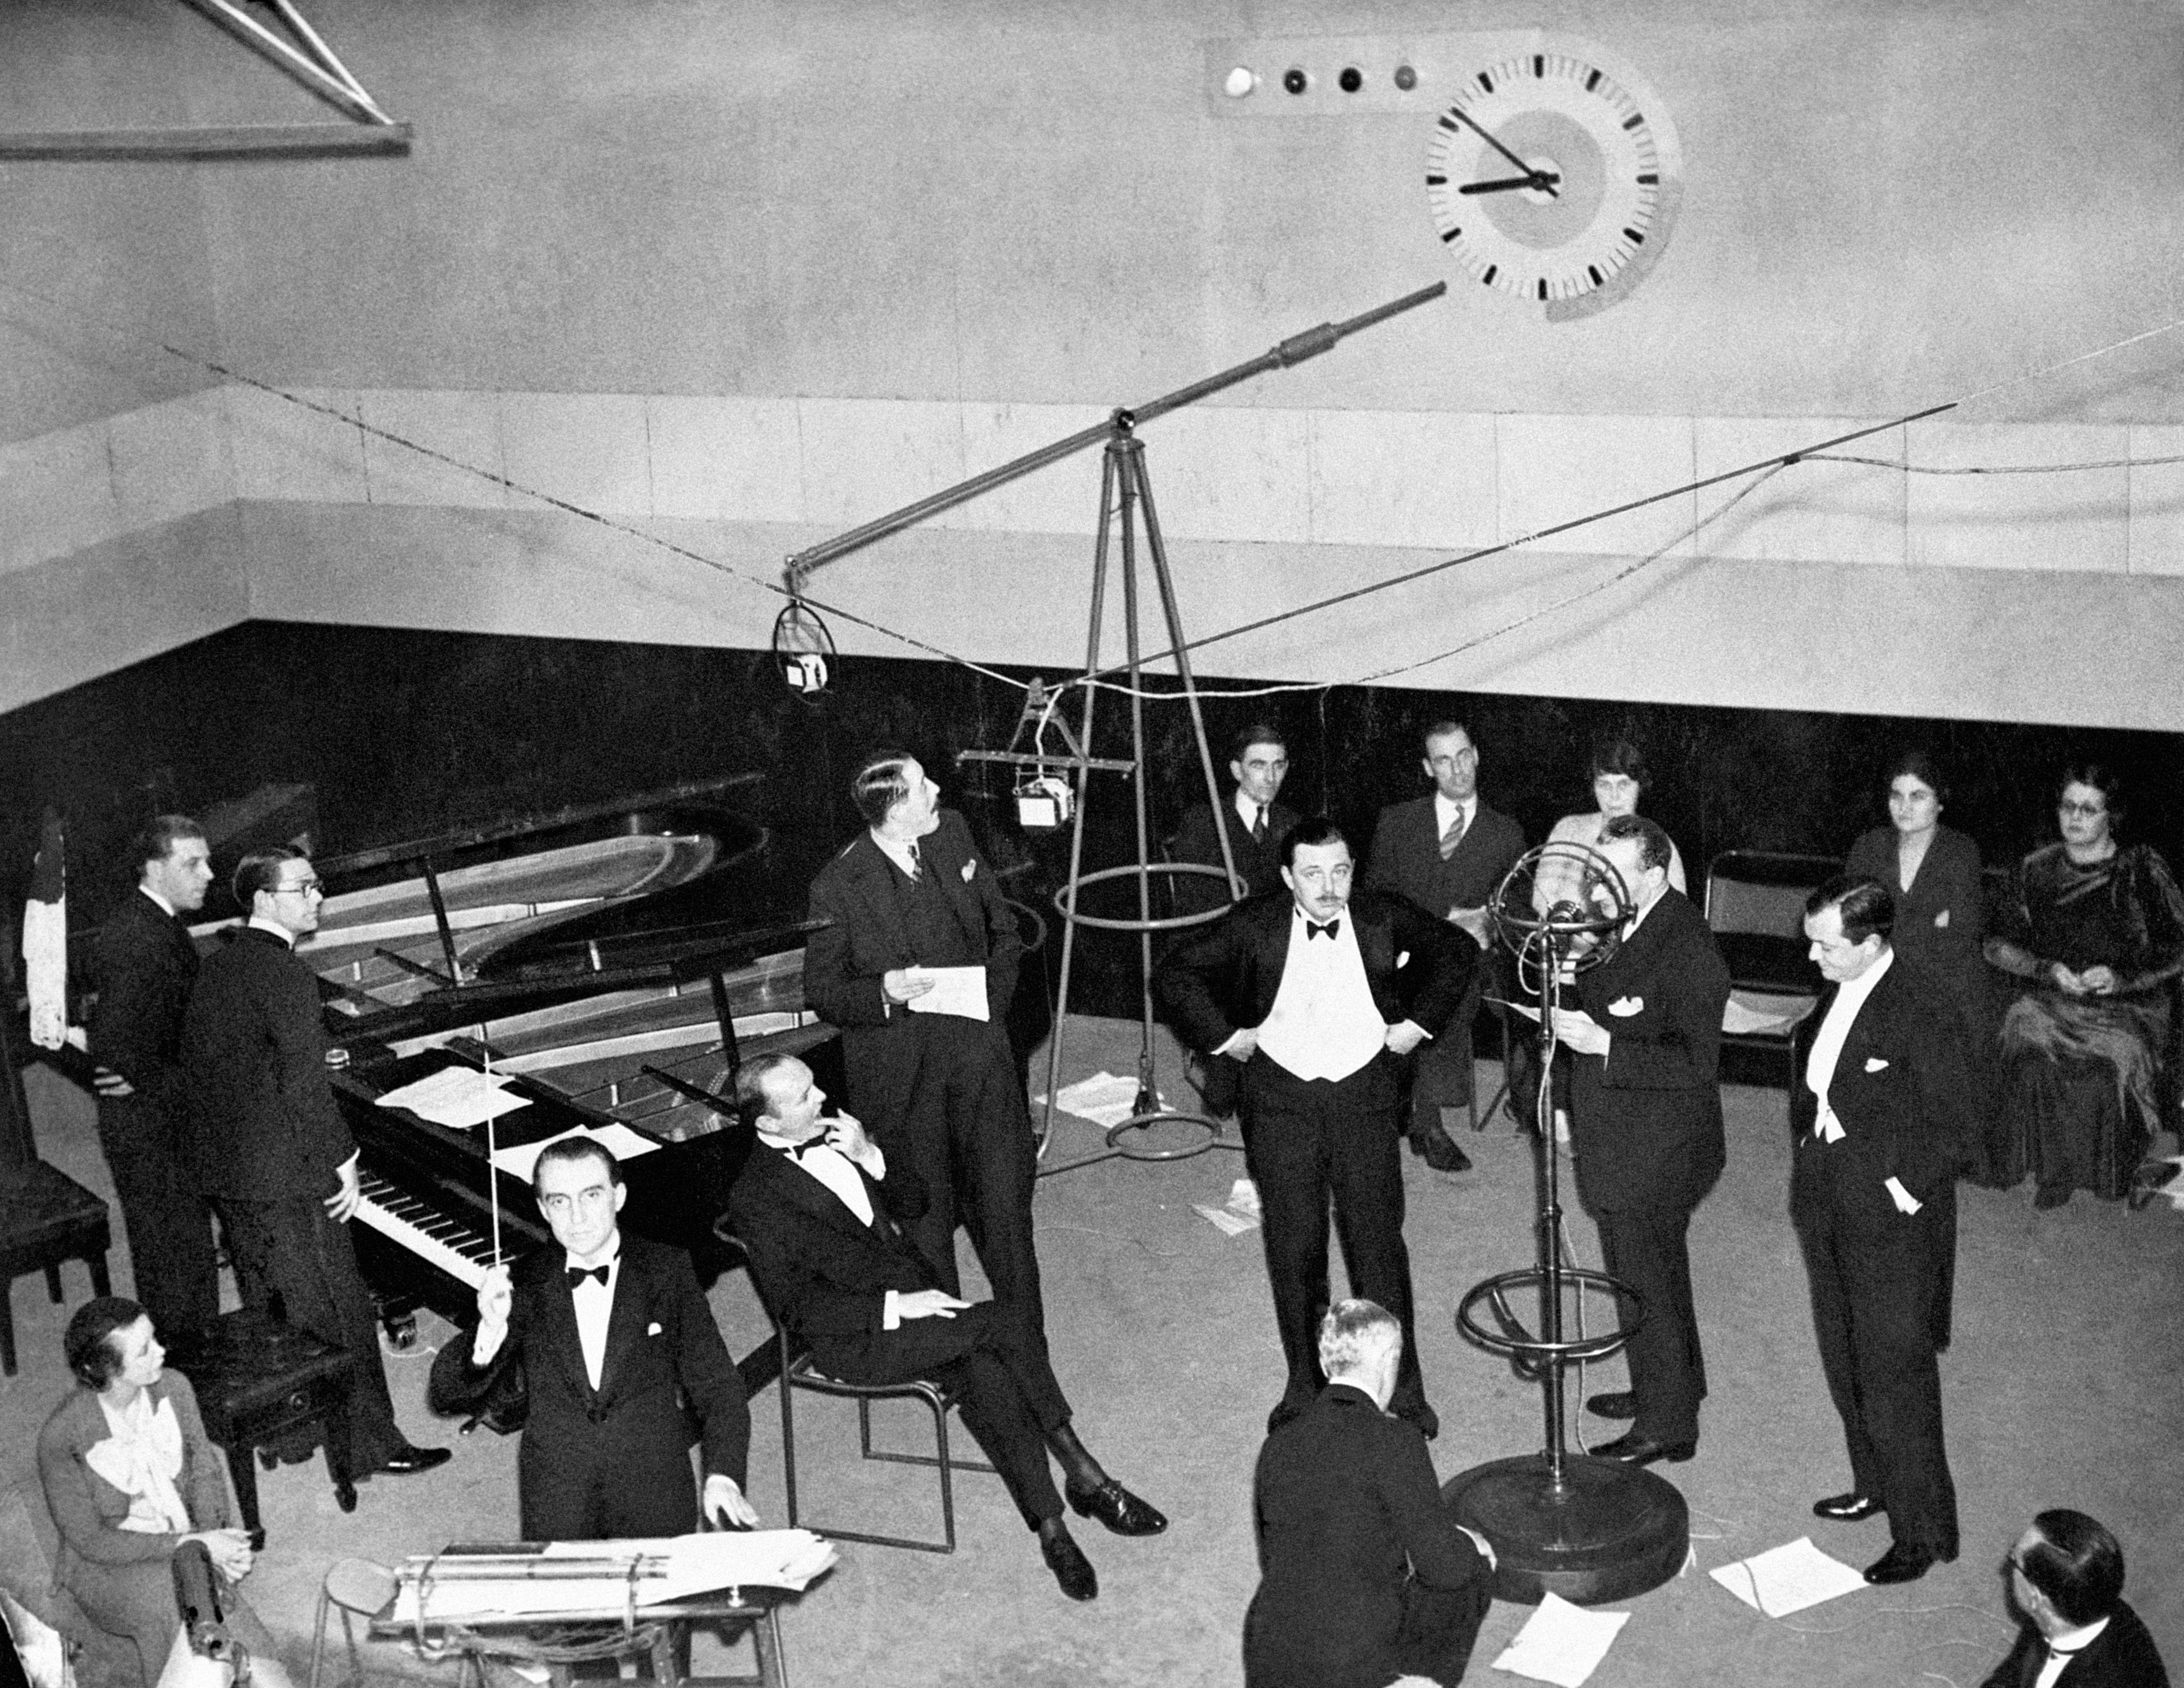 A scene in a 1930s BBC recording studio showing Christopher Stone, wearing a dinner jacket, bidding listeners 'Good Evening'. 01/07/1933